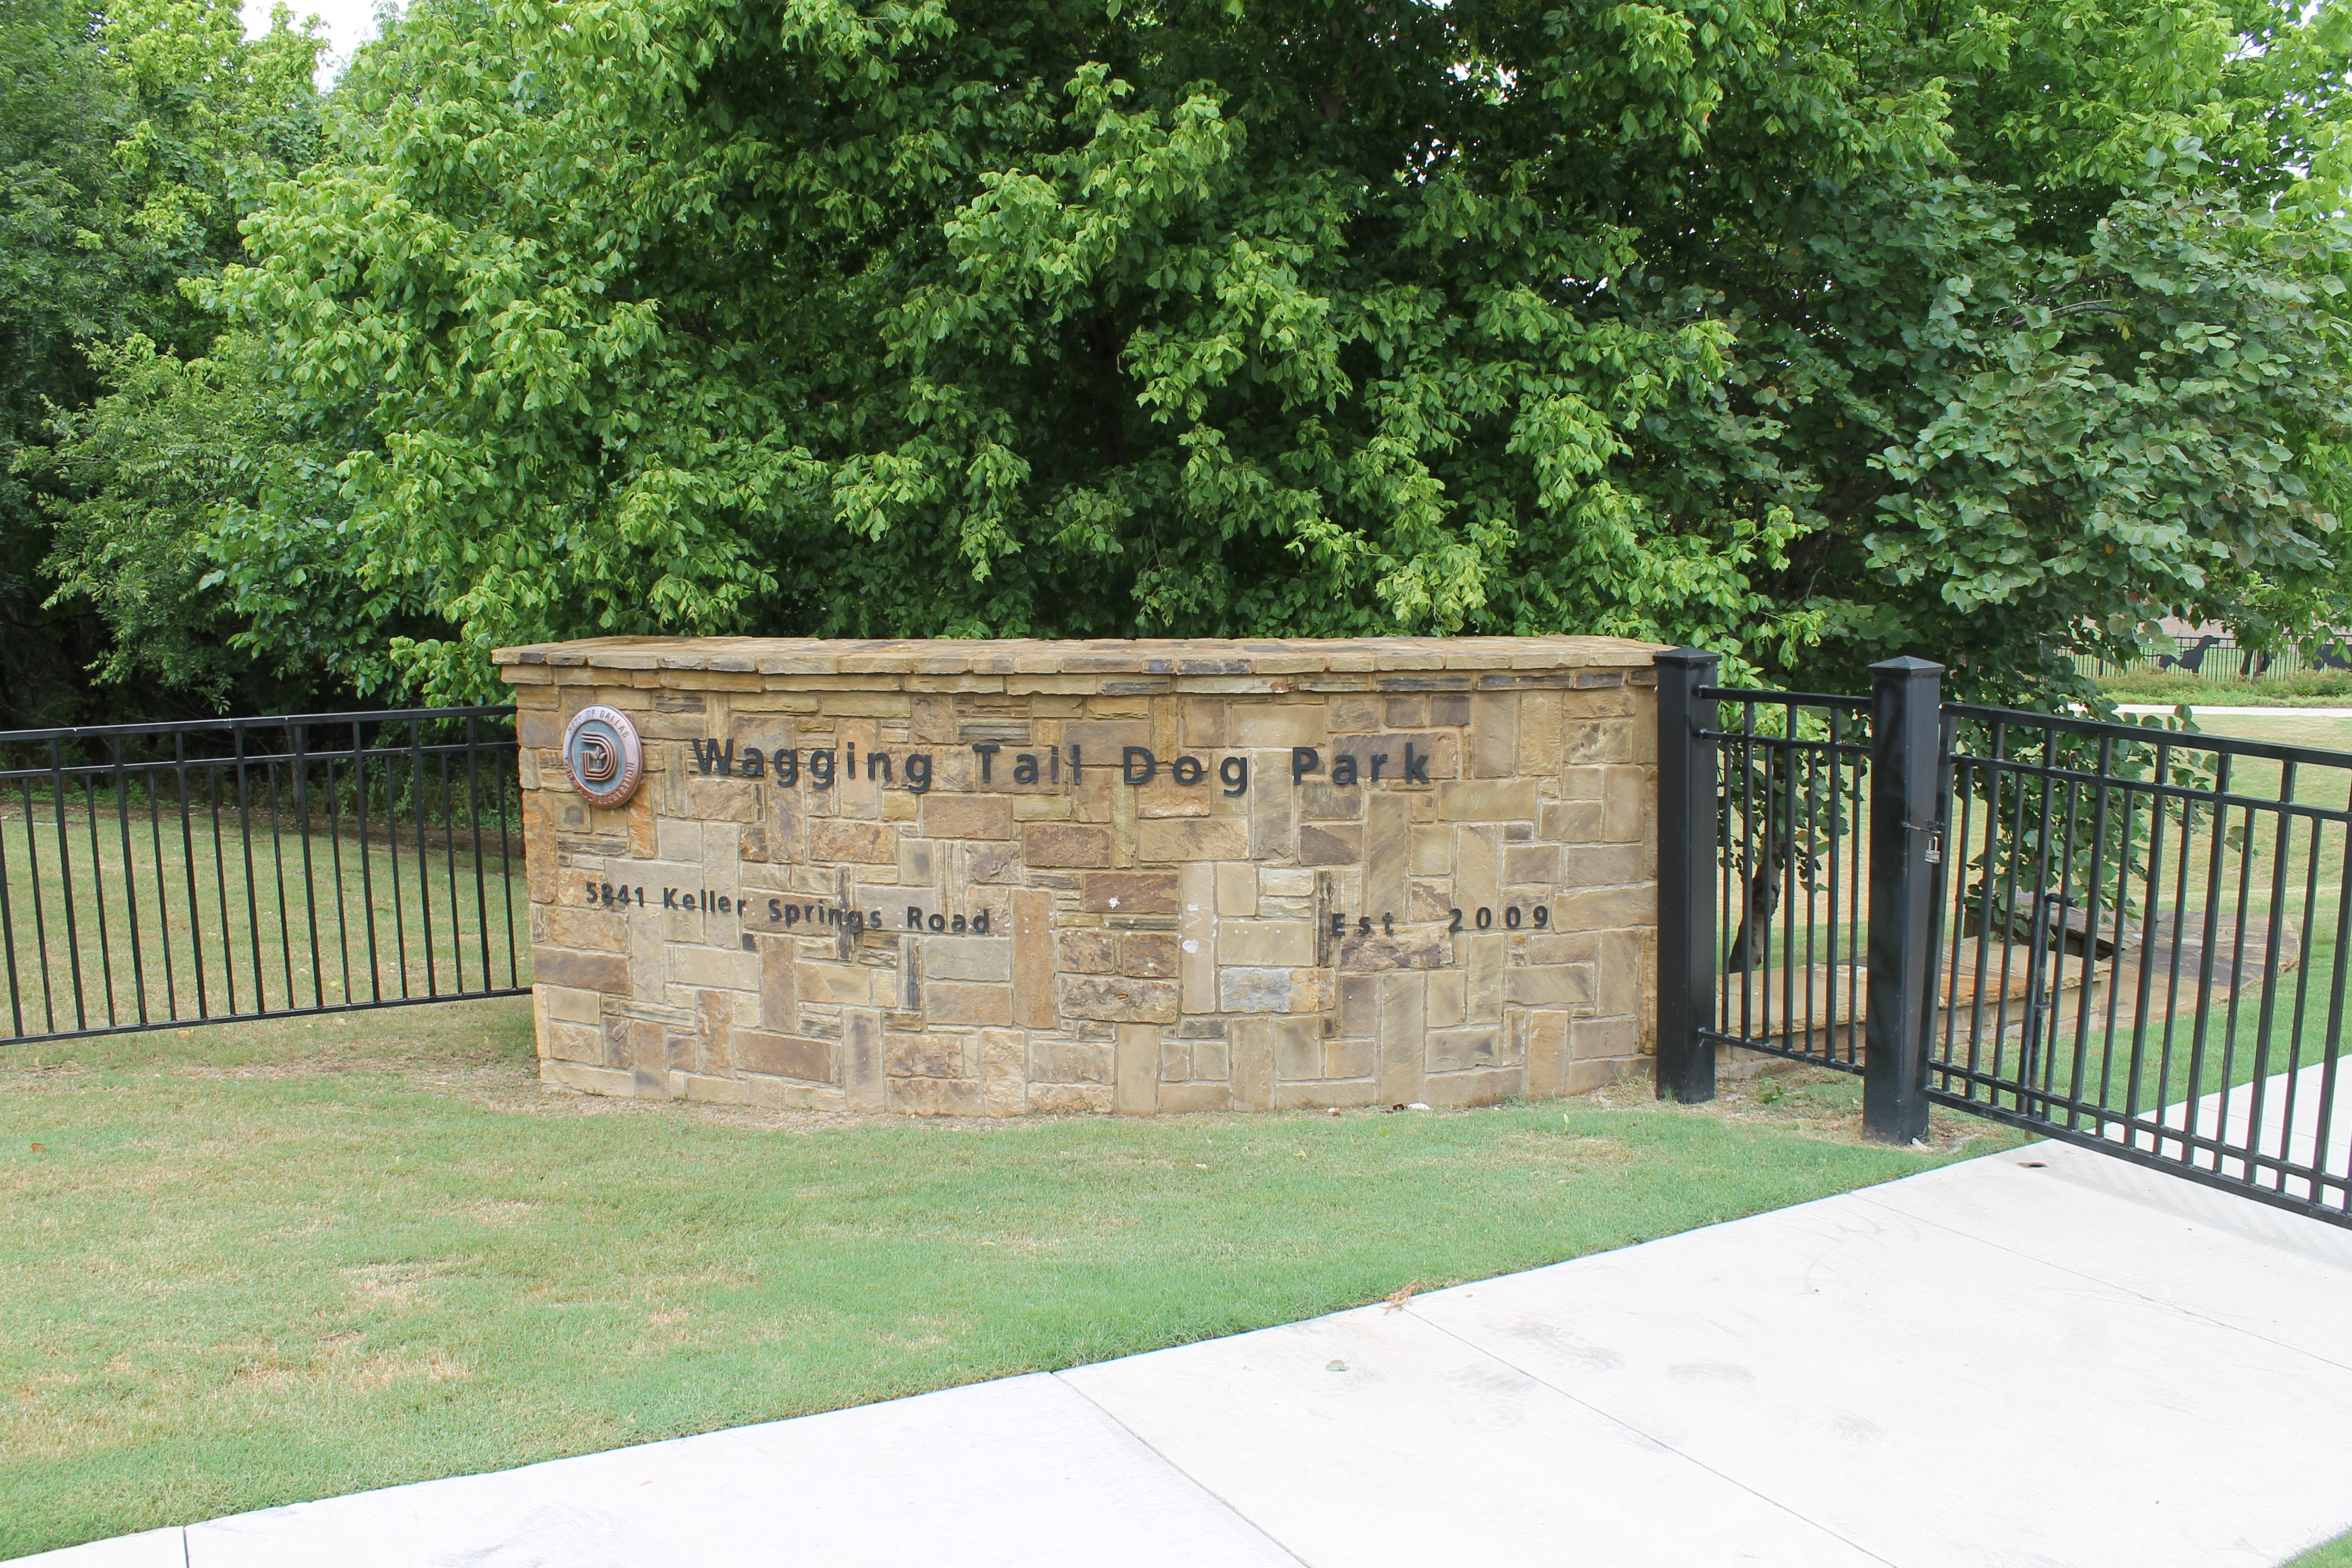 Wagging Tail Dog Park